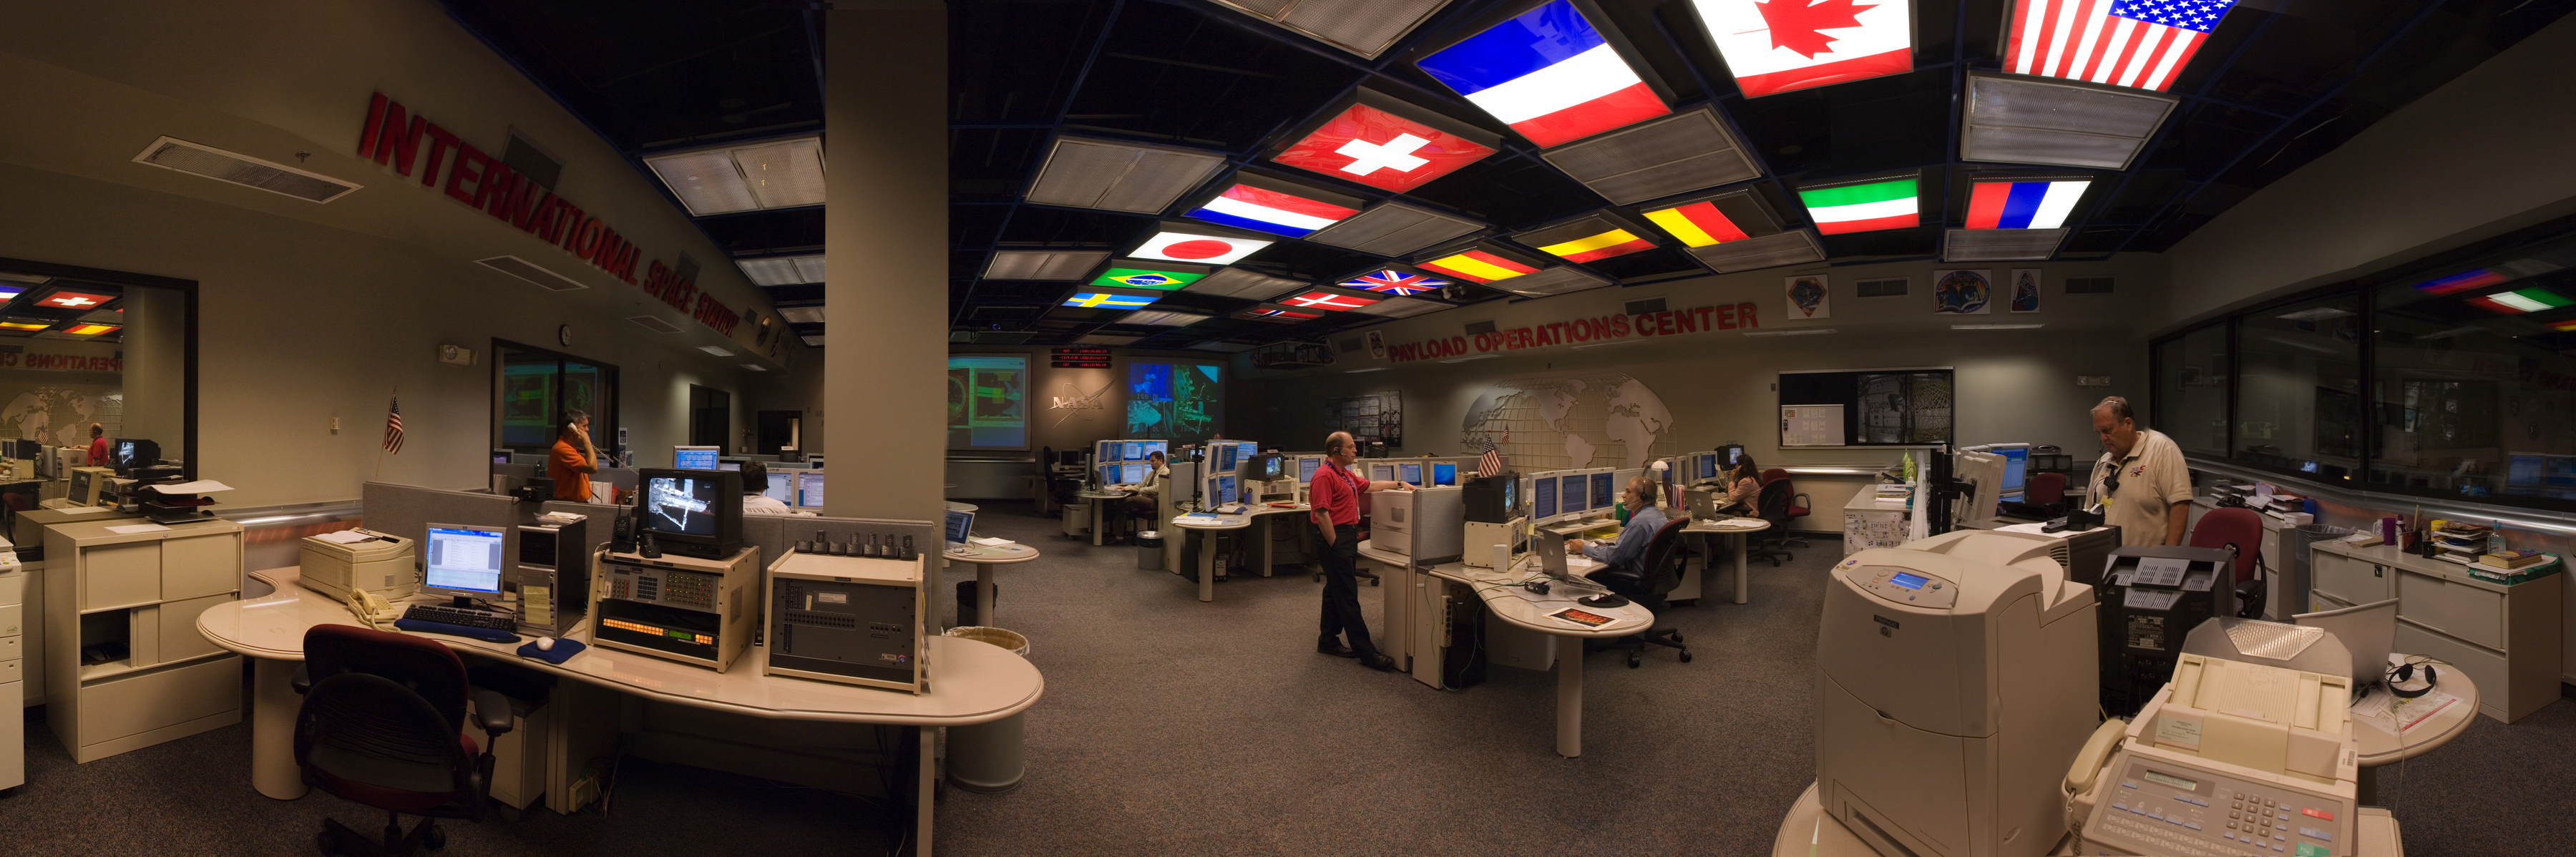 The International Space Station Payload Operations Center at Marshall Space Flight Center.